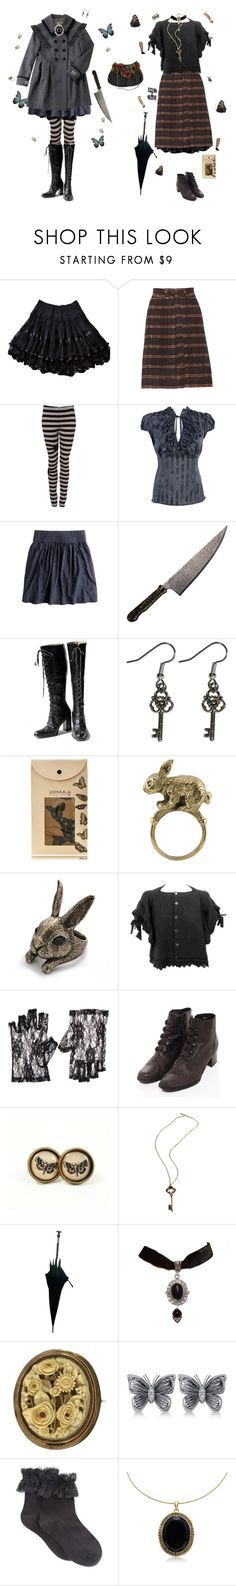 """""""Alice Liddell"""" by ms-izanator ❤ liked on Polyvore featuring Étoile Isabel Marant, Ann-Sofie Back, Debenhams, J.Crew, ZOHARA, Sakdidet Road, Mary Frances Accessories, ASOS, INDIE HAIR and Allurez"""